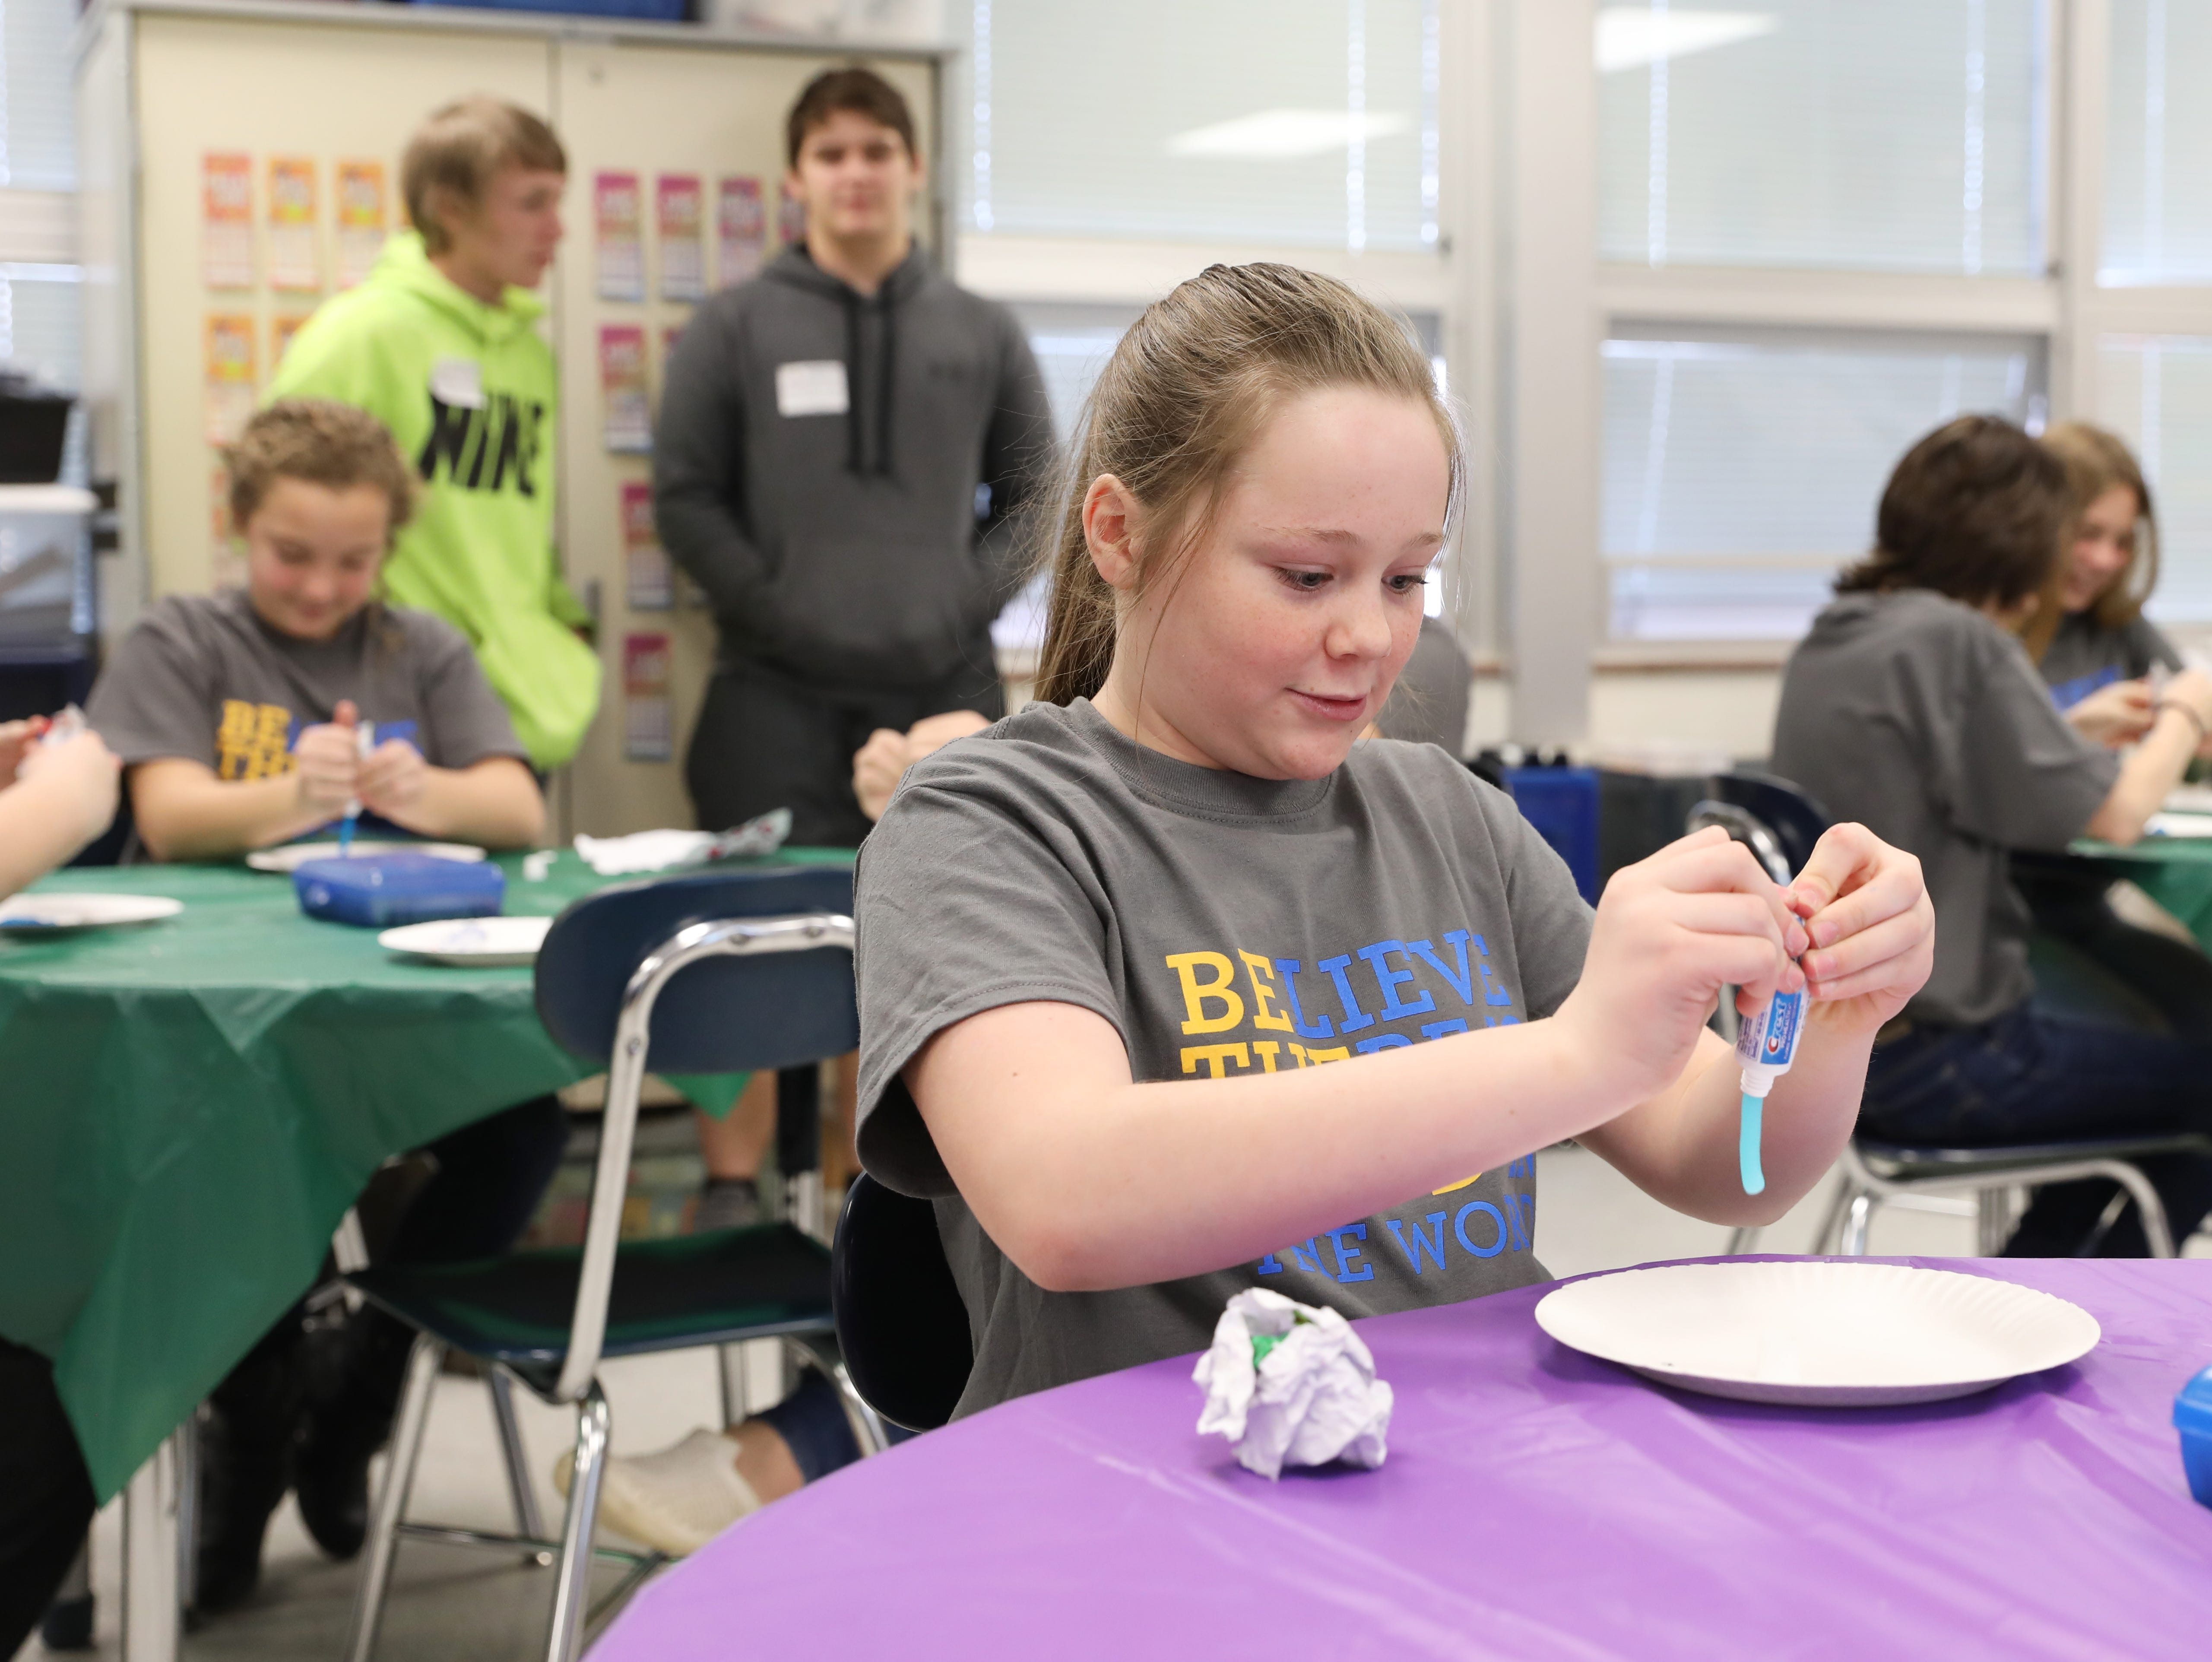 Lillie Rosser, a sixth grader at Roseville Elementary School, sqeezes a tube of toothpaste during the schools' dude. be nice program.